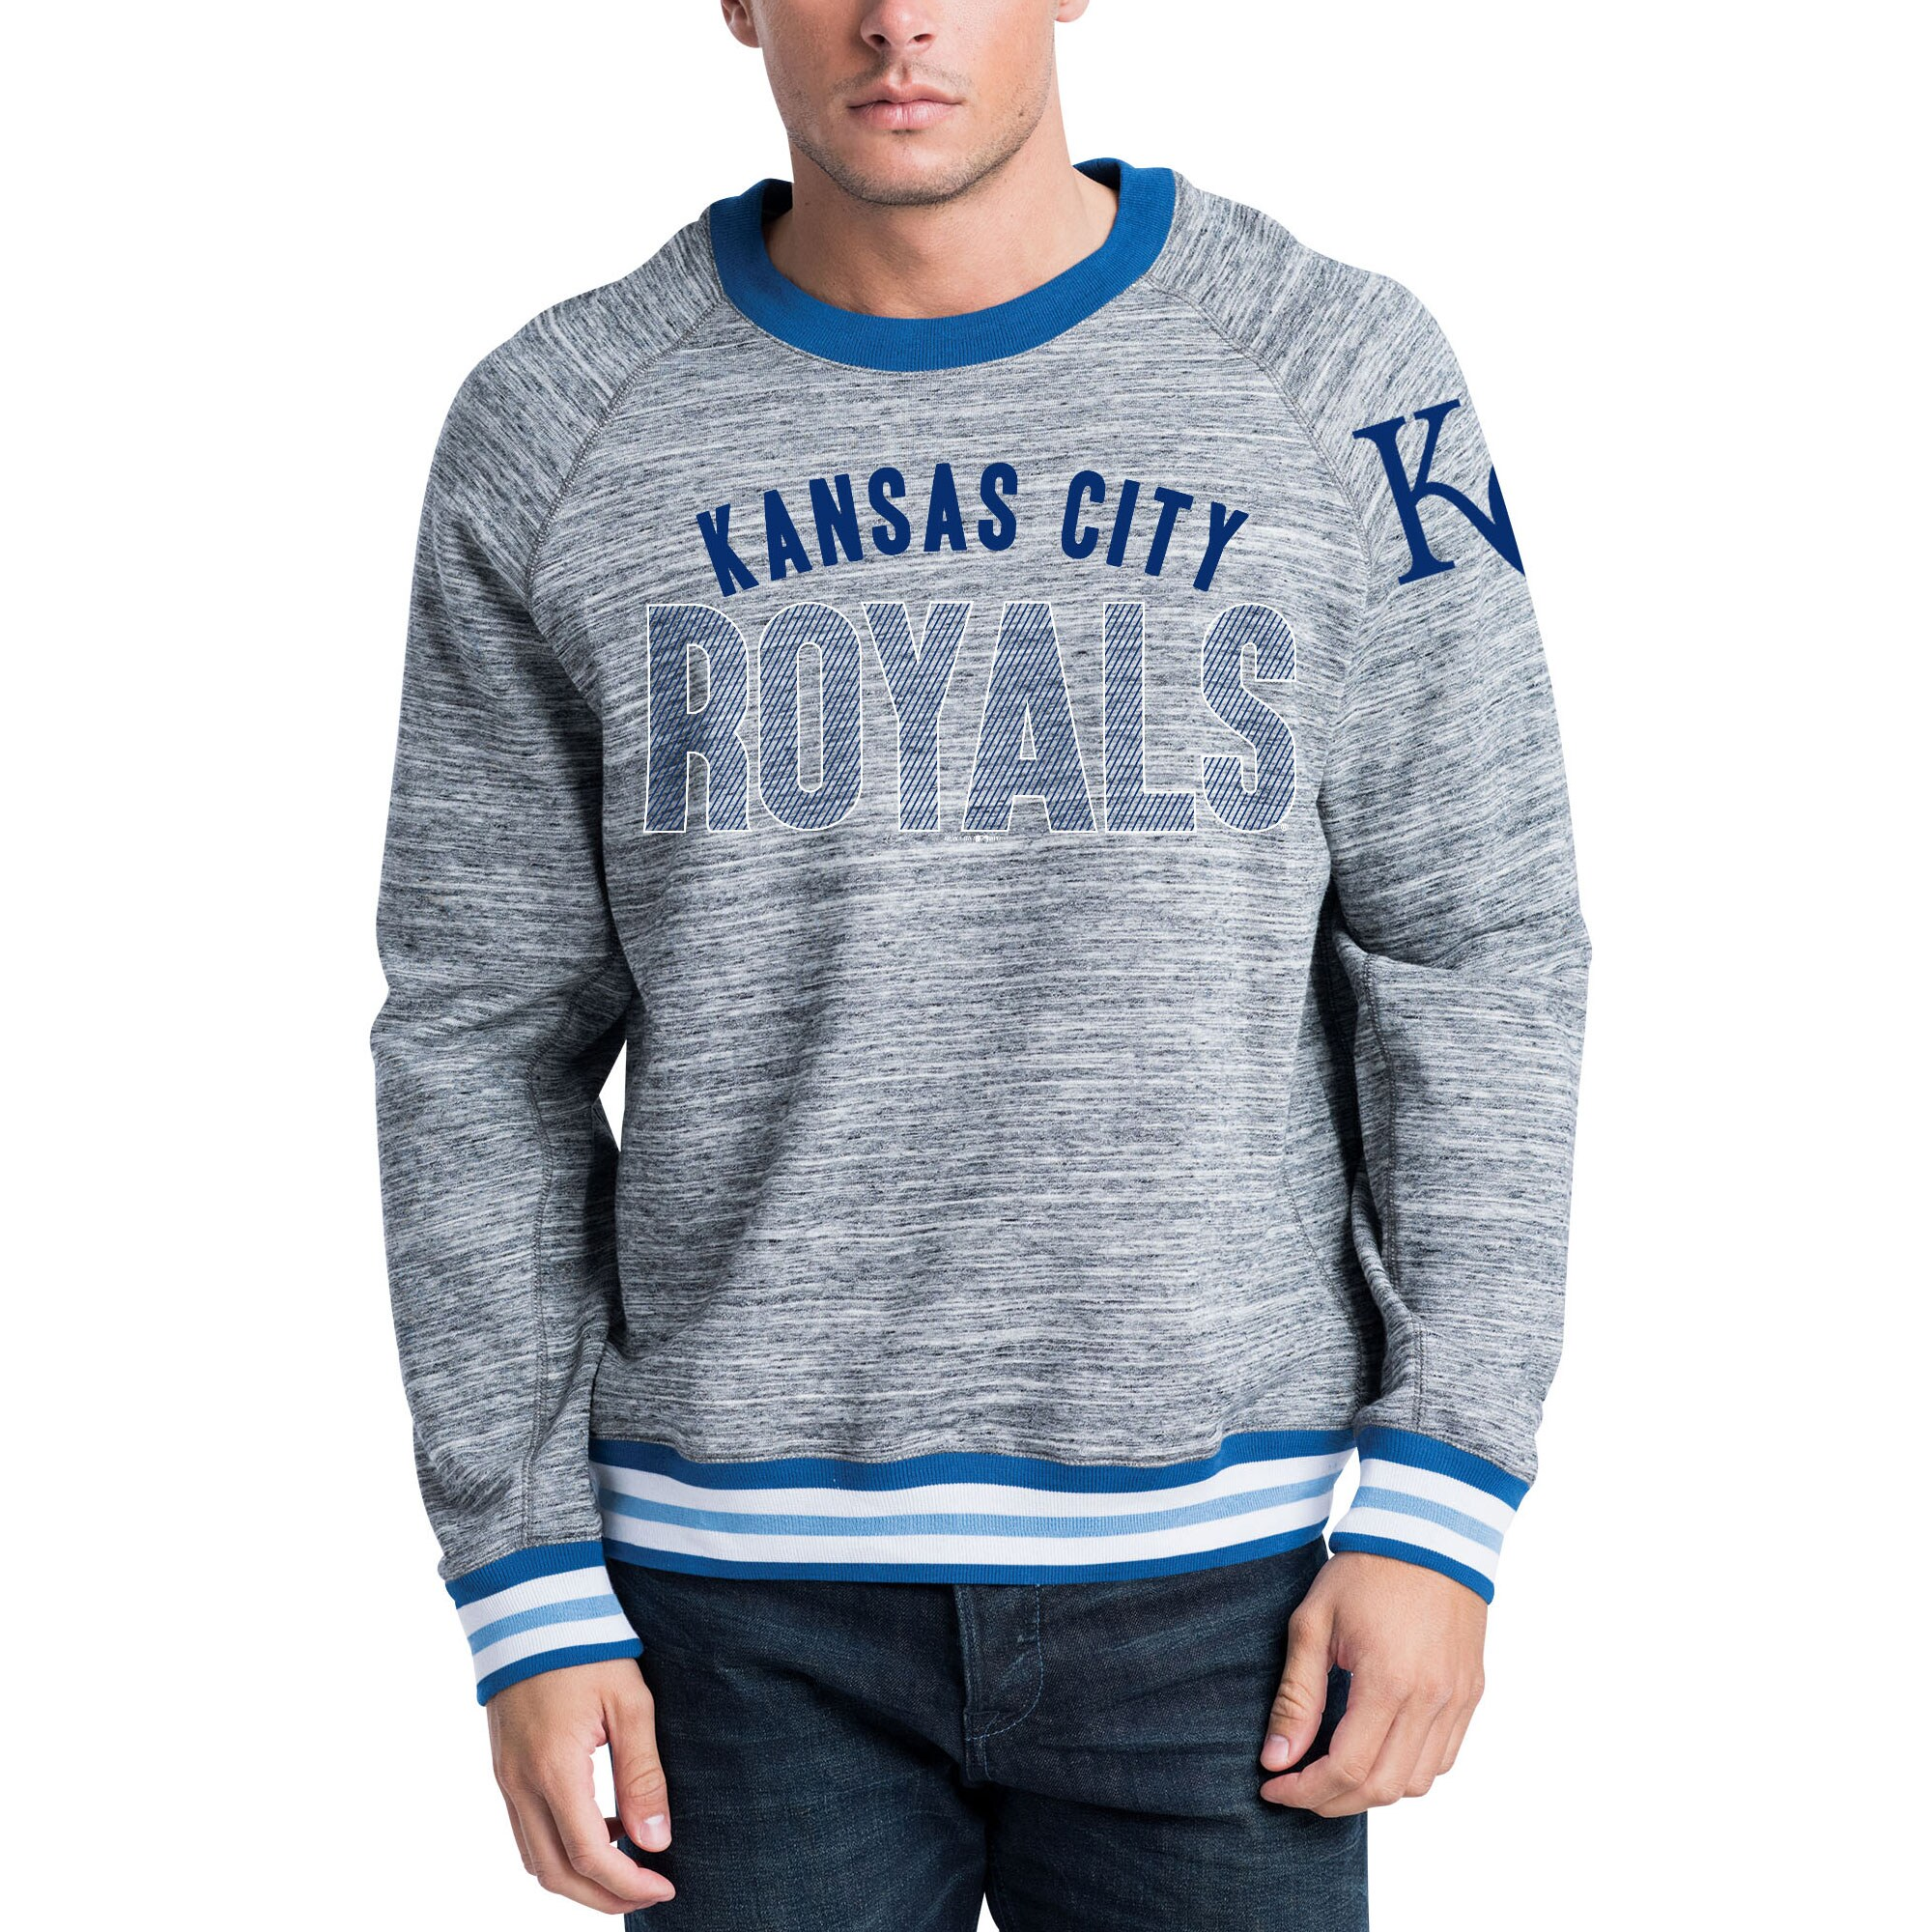 Kansas City Royals New Era French Terry Sweatshirt - Steel/Royal